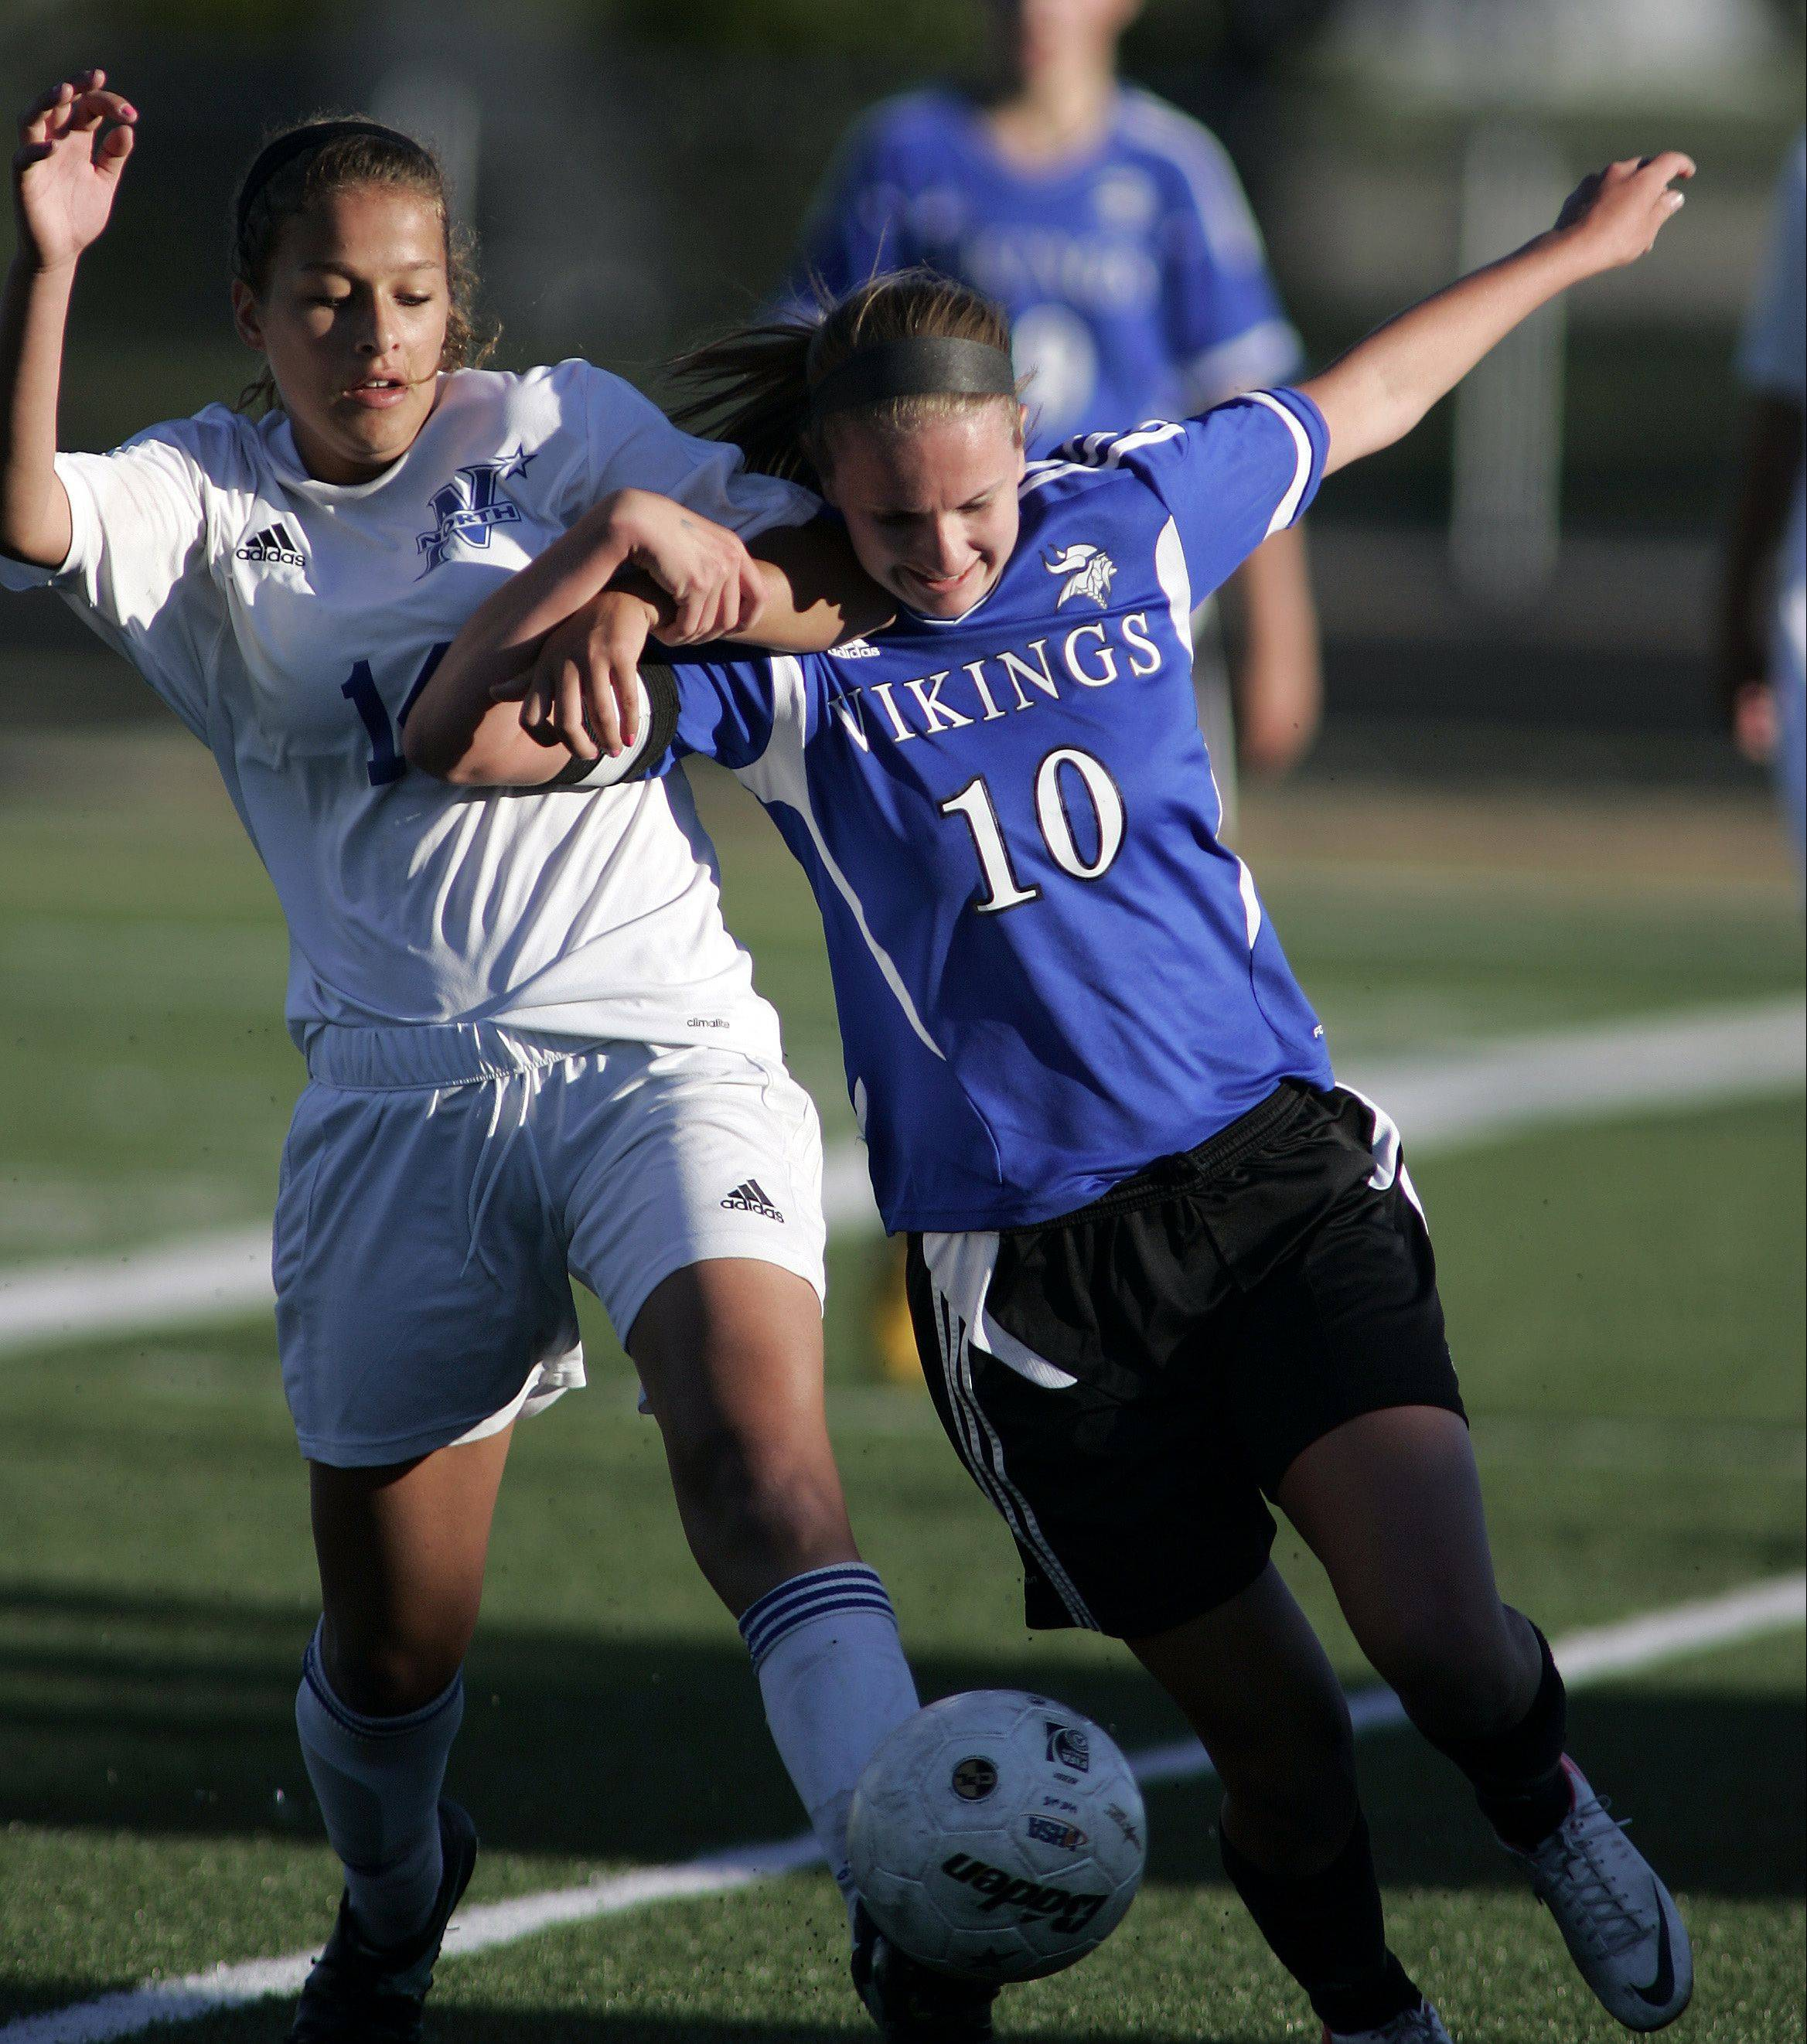 St. Charles North's Elizabeth Parrilli (14) battles Geneva forward Amanda Lulek (10) for control of the ball Friday.